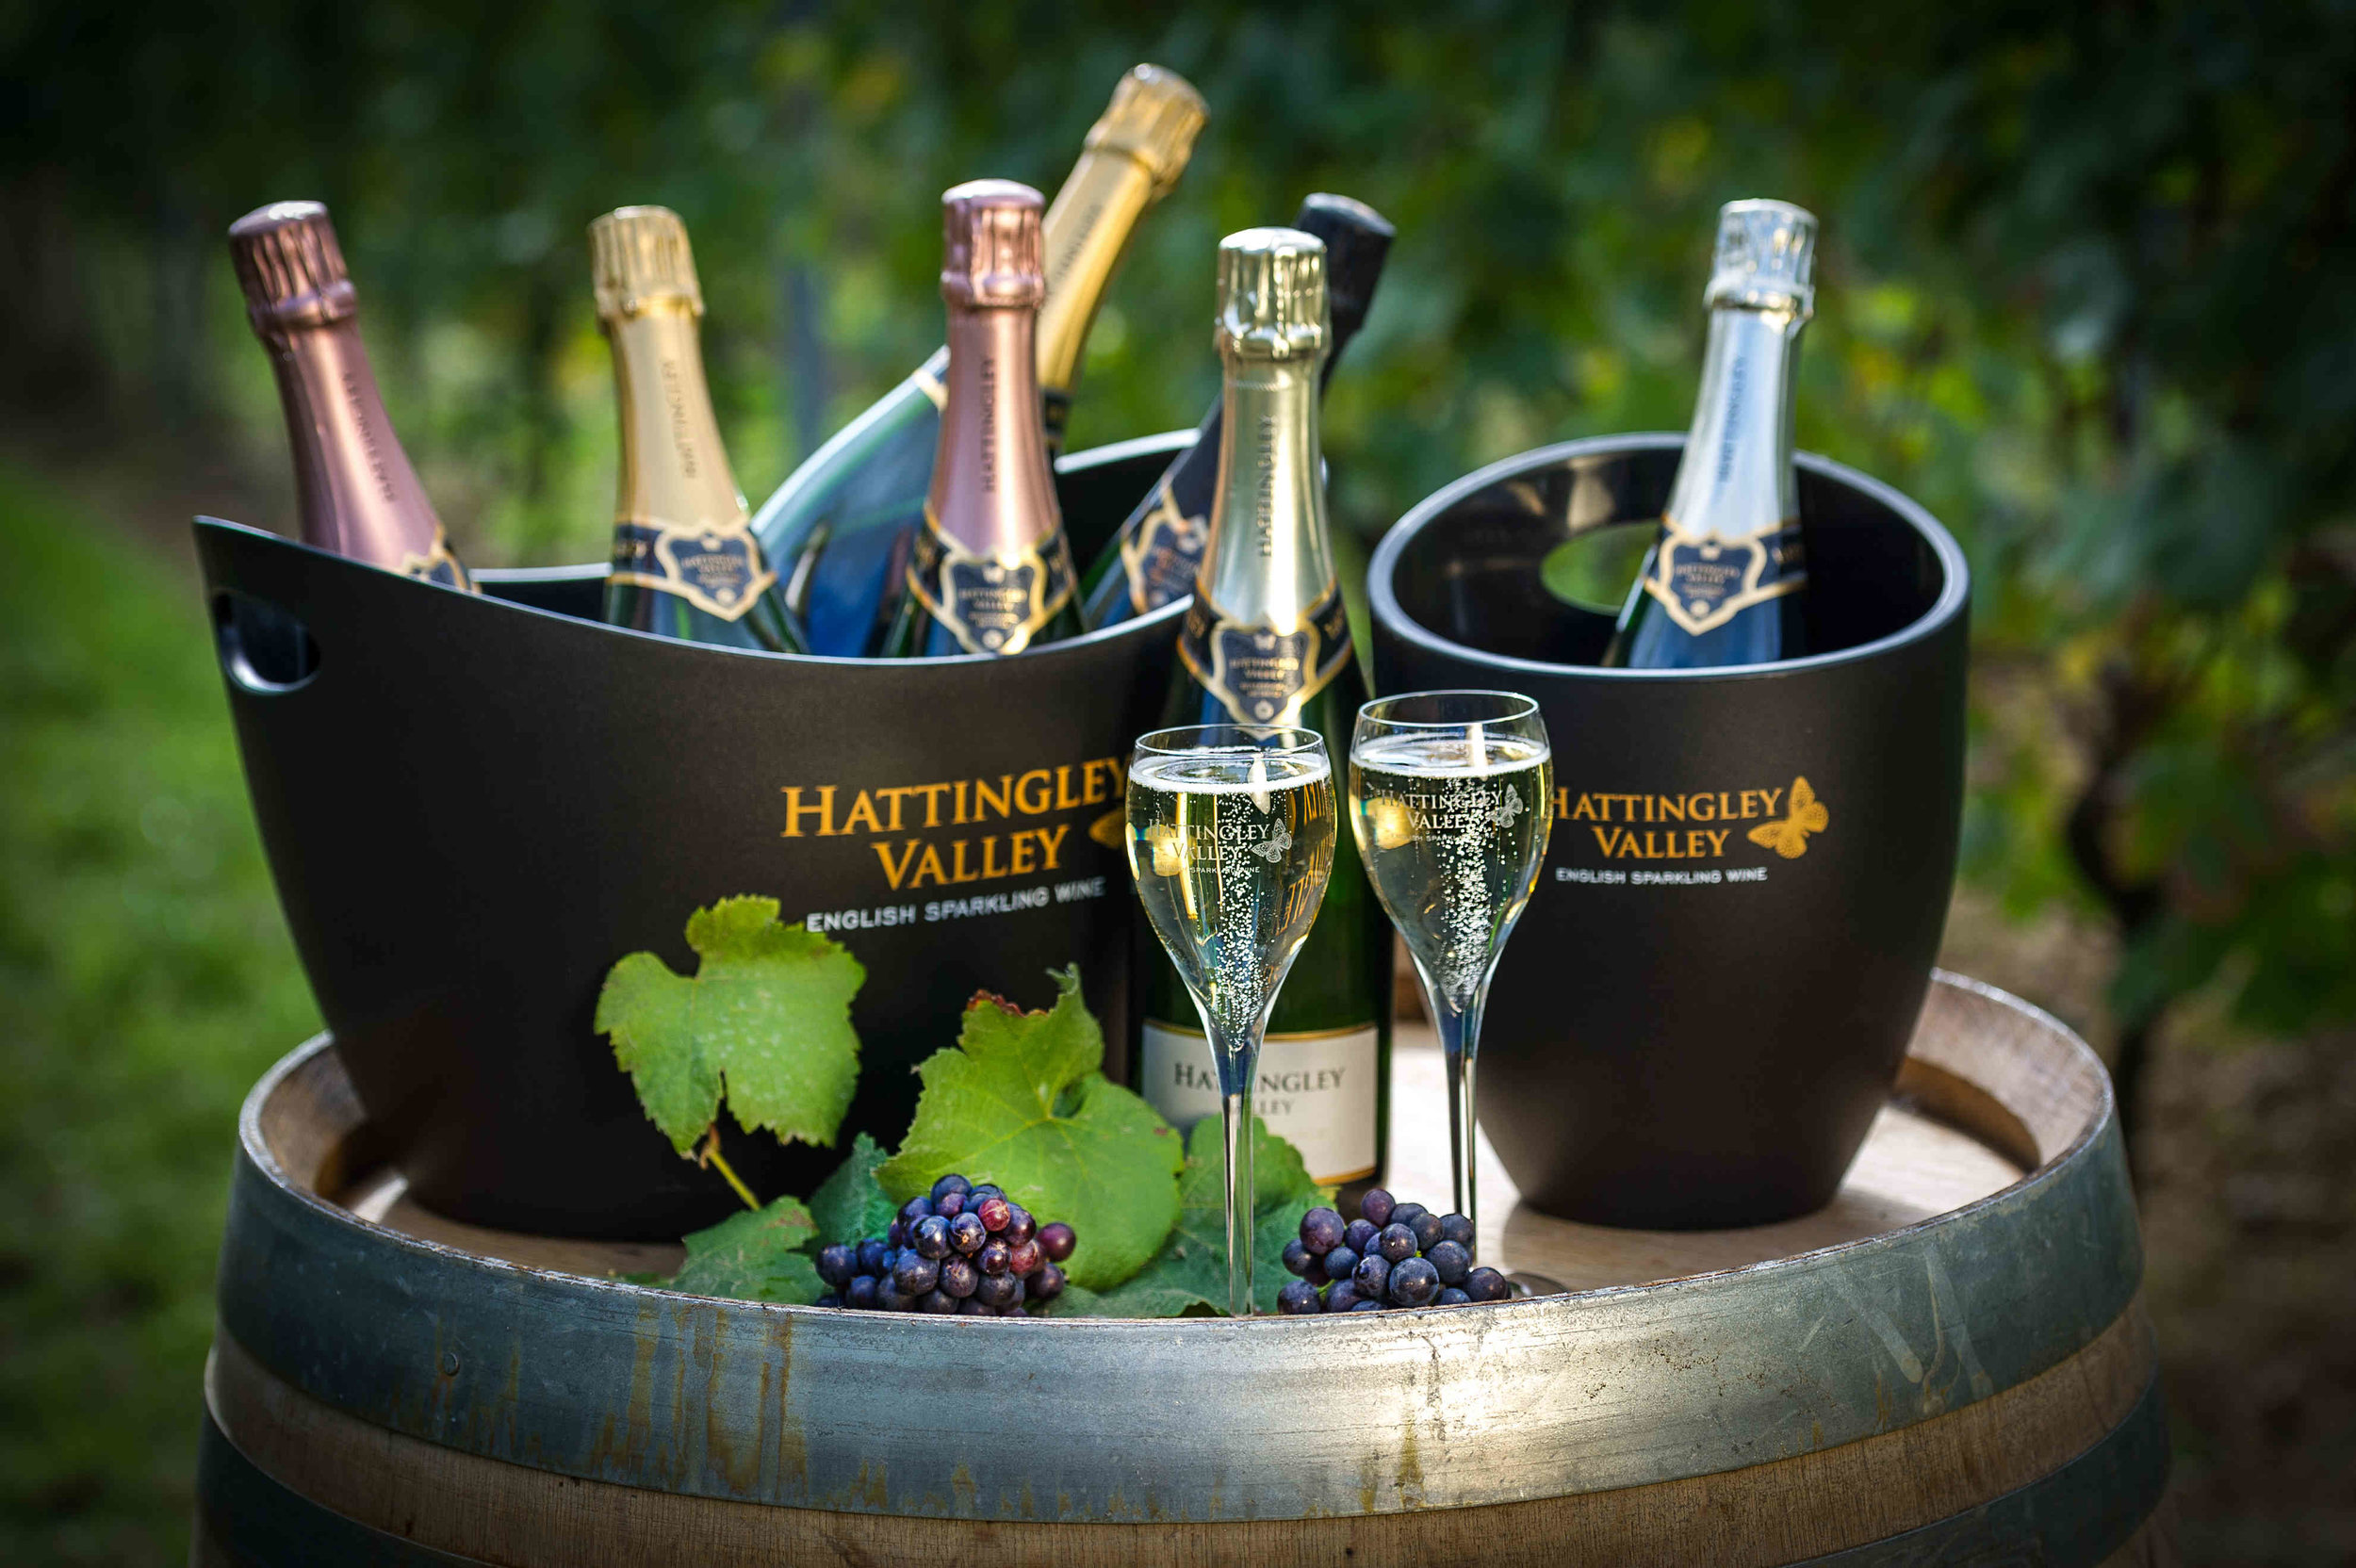 Hattingley Valley_Bottles & fizz in Vineyard_© The Electric Eye Photography.jpeg